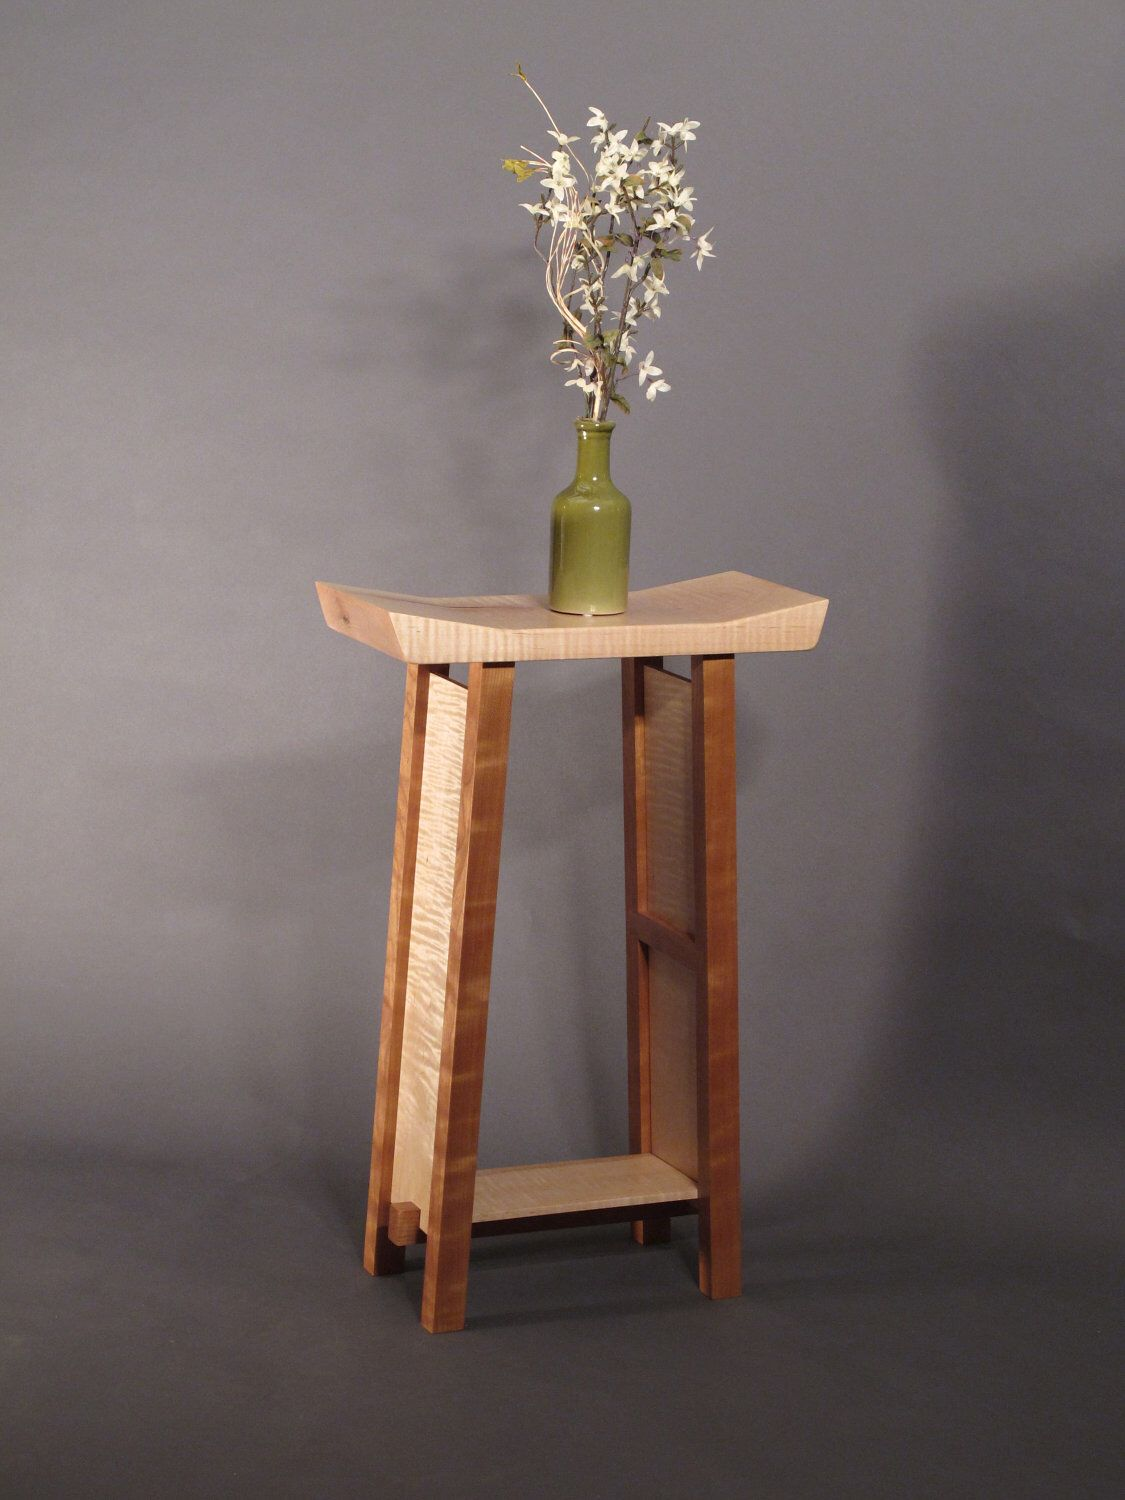 Small Side Table: Tiger Maple U0026 Cherry Narrow End Table, Accent Table, Entry